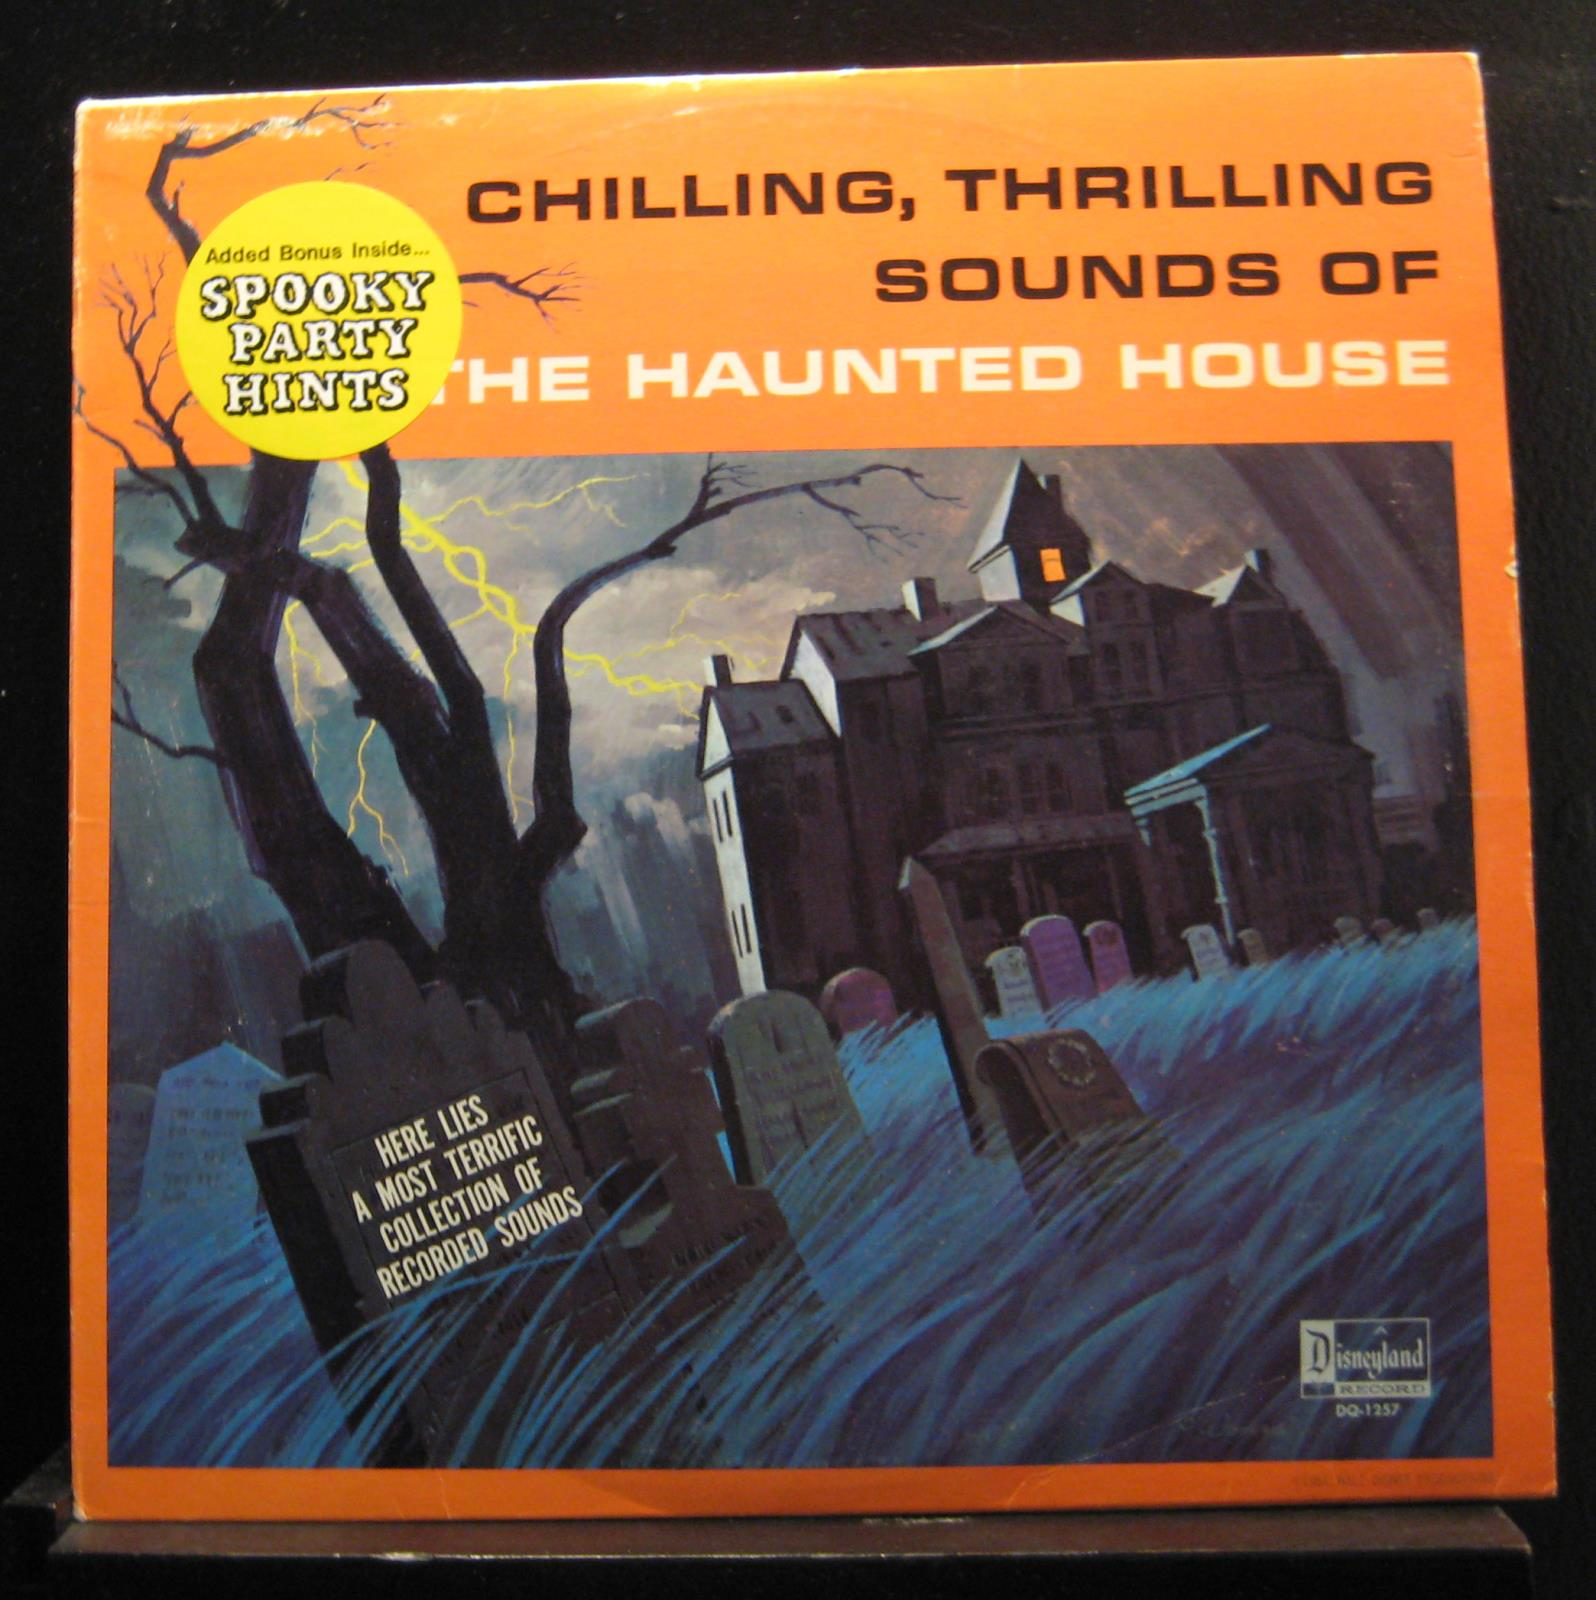 Chilling Thrilling Sounds Of The Haunted House Lp Vg Dq